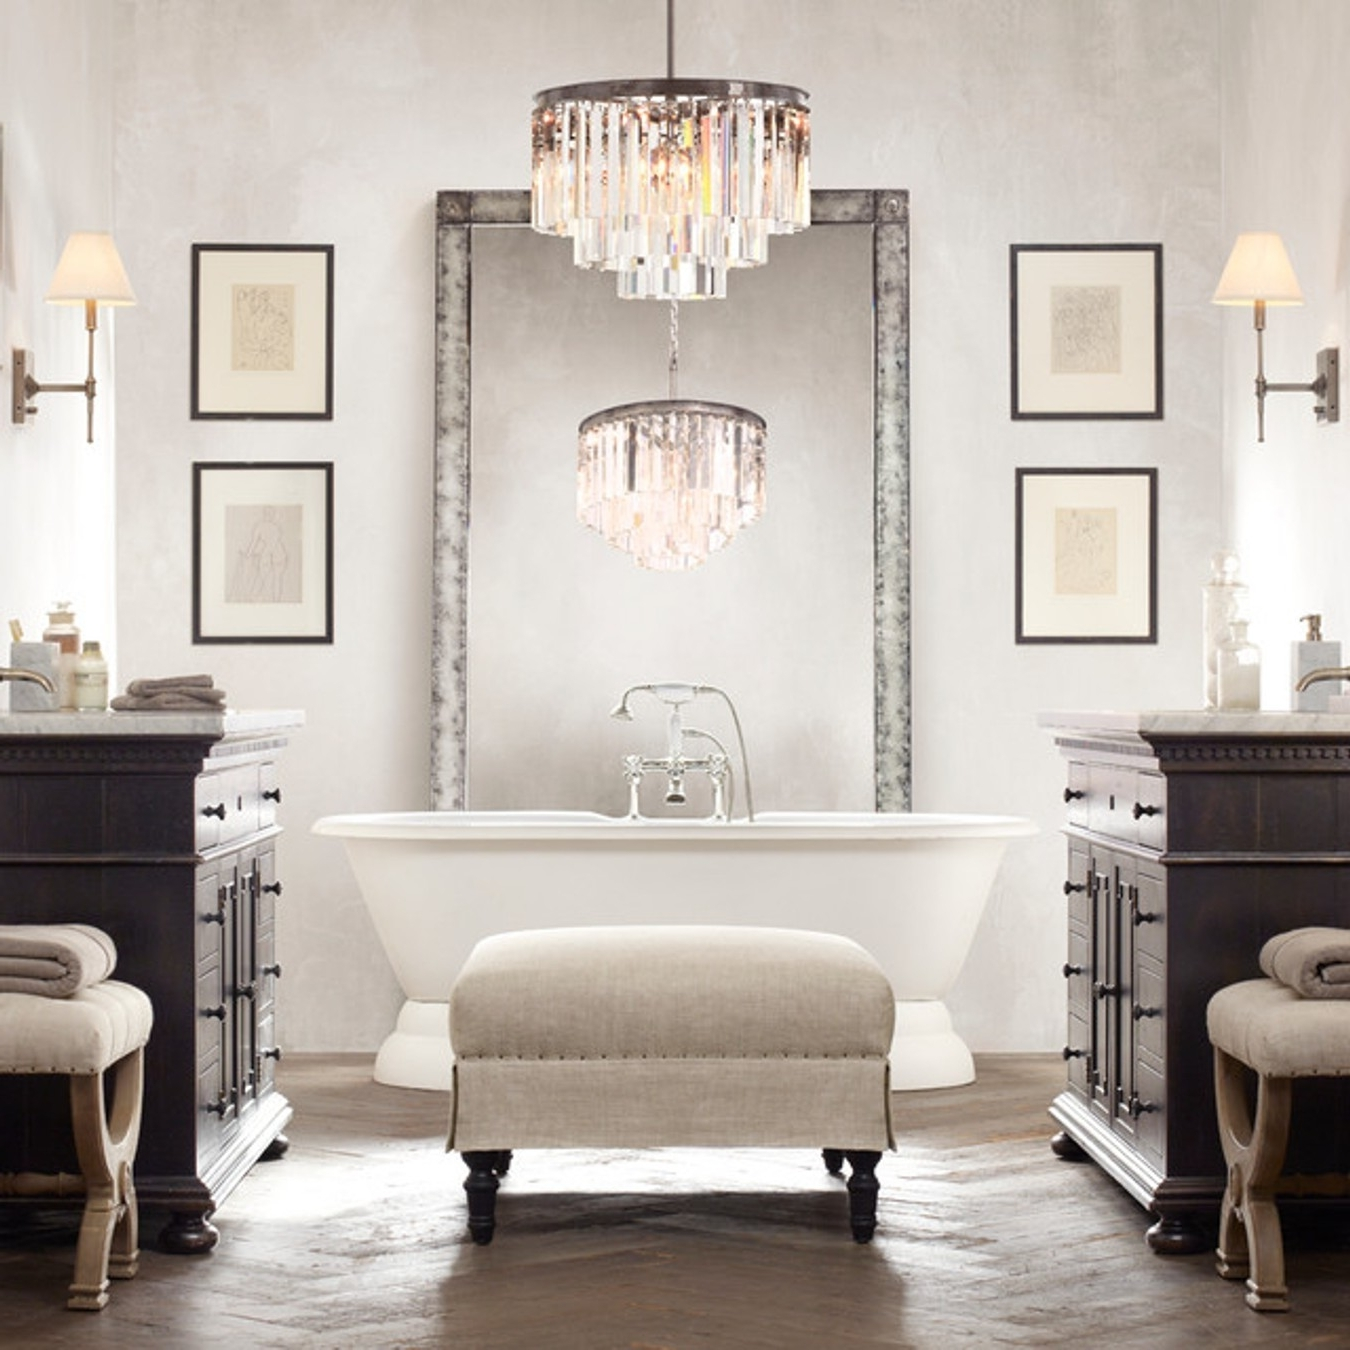 Widely Used Bathroom Chandeliers Within Pendant Lights (View 19 of 20)